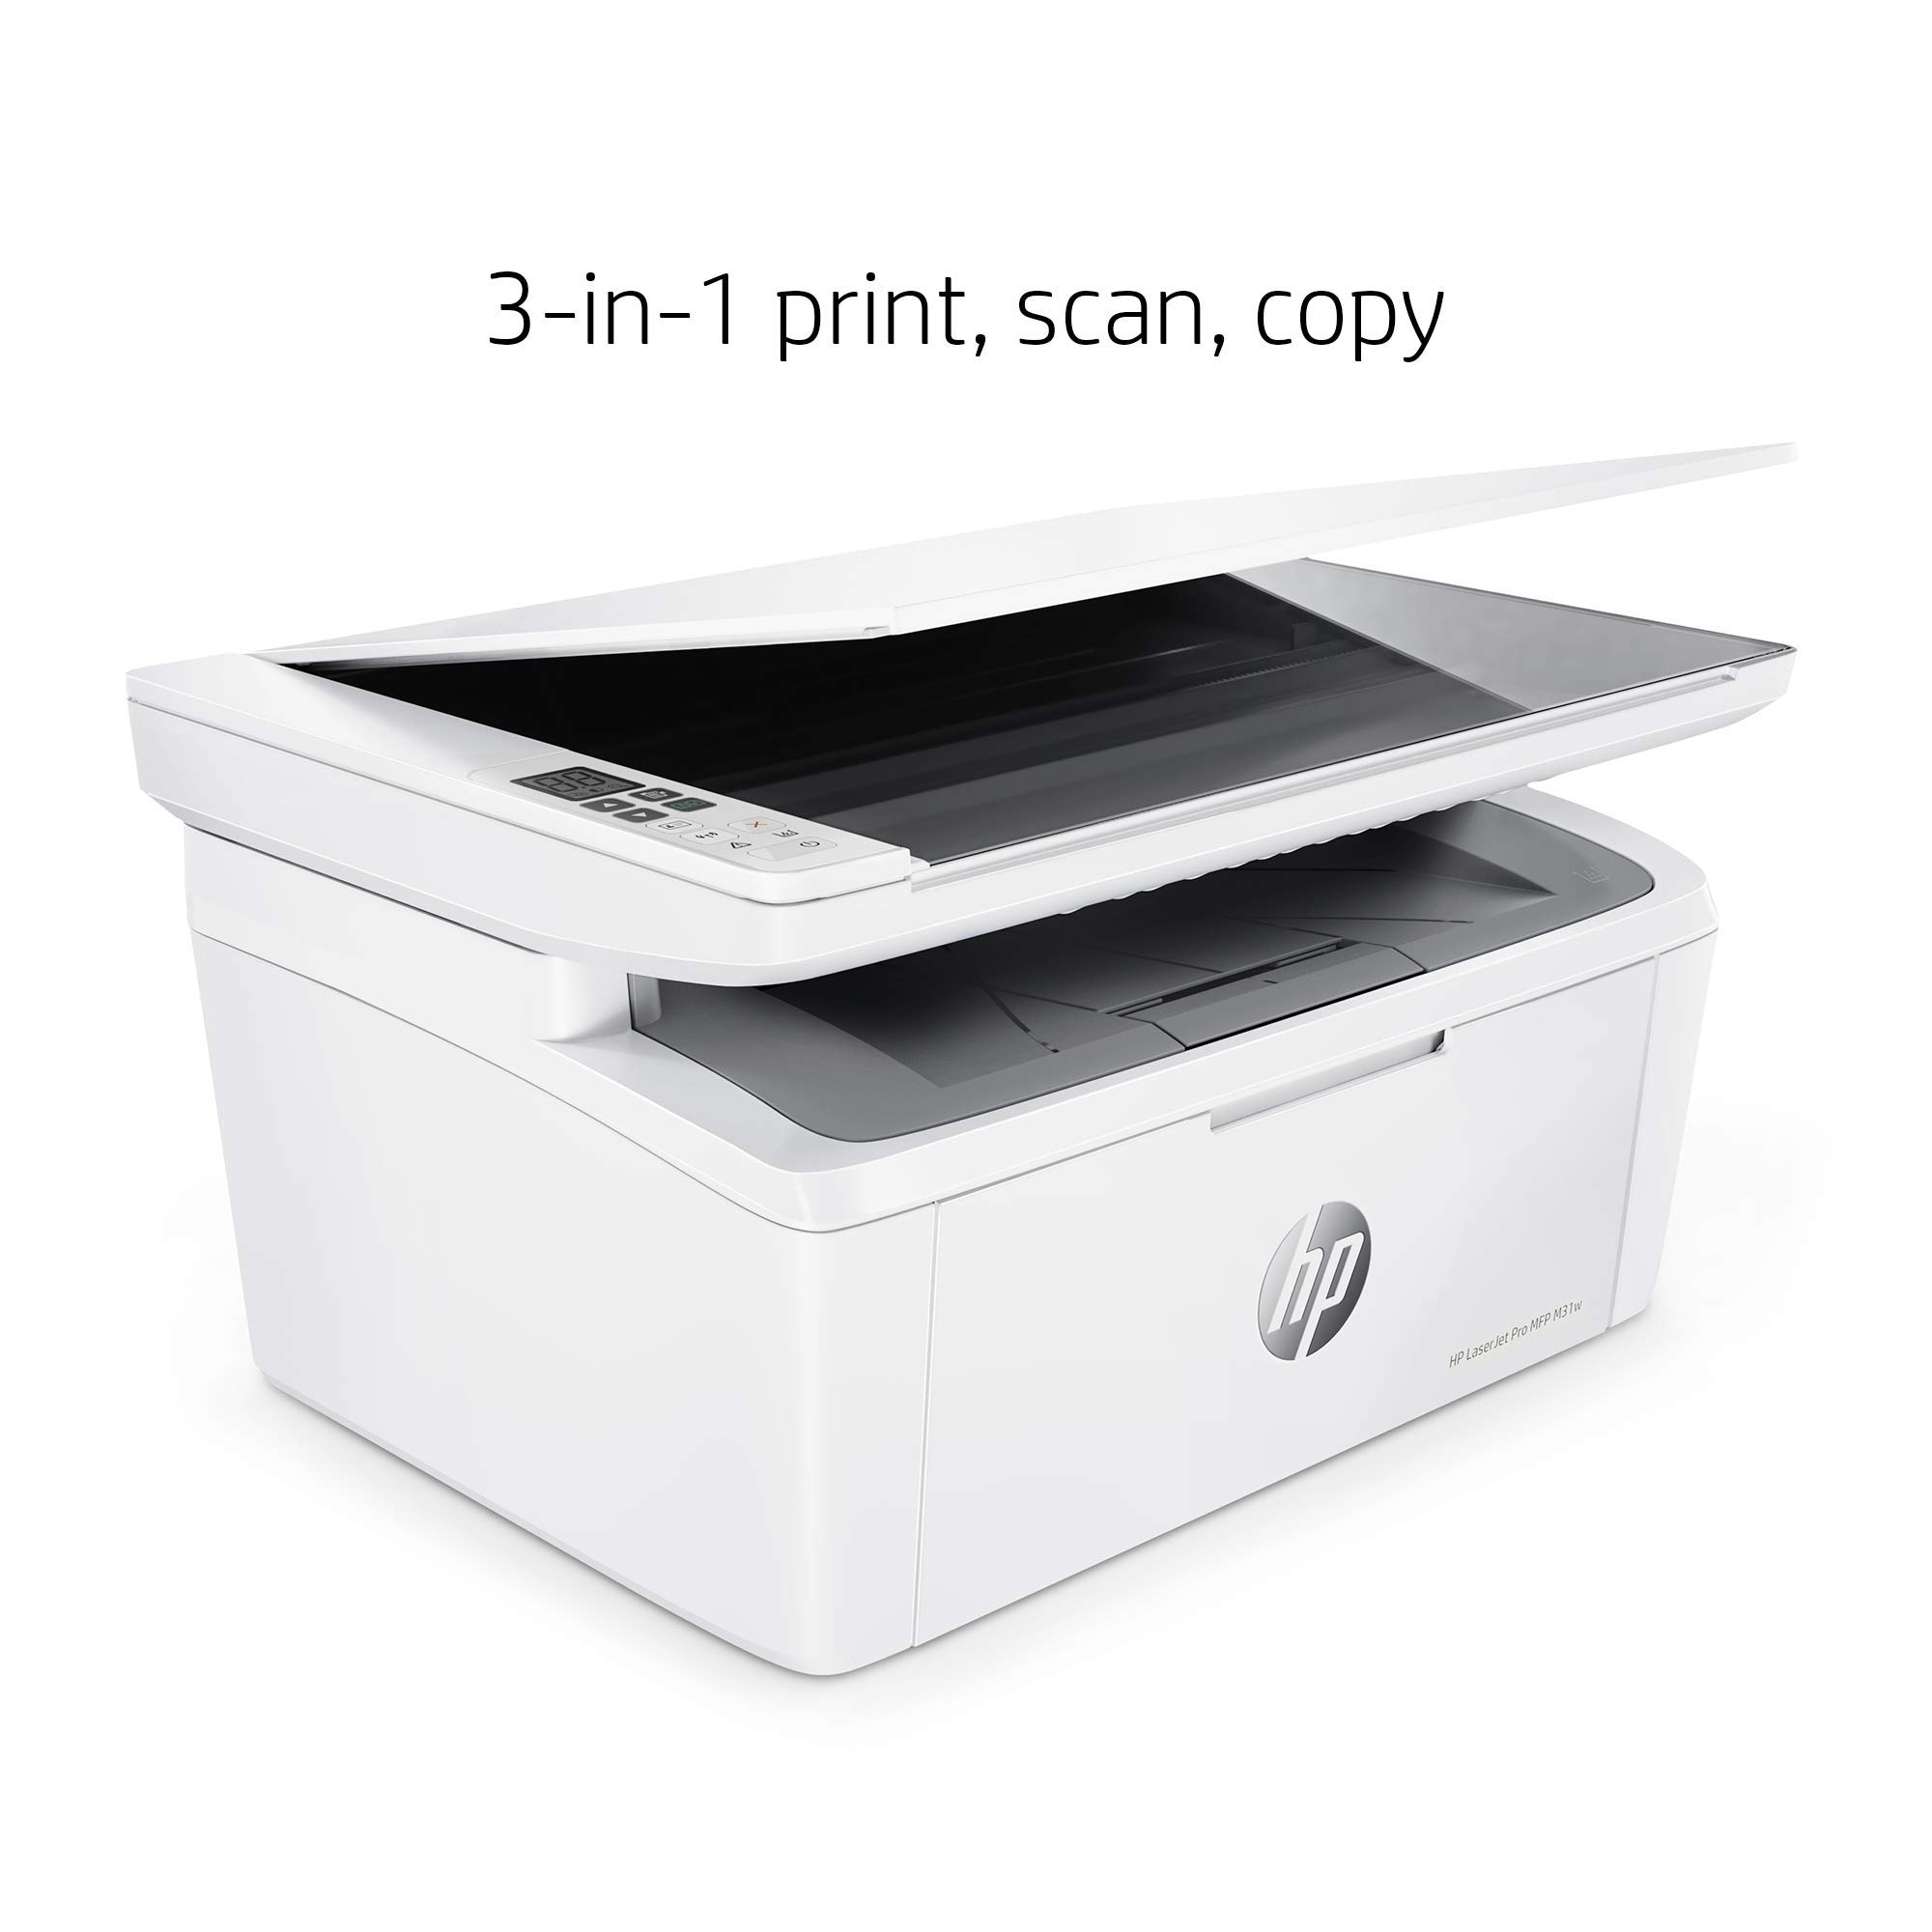 HP Laserjet Pro M31w All-in-One Wireless Monochrome Laser Printer with Mobile Printing (Y5S55A) (Renewed) by HP (Image #8)